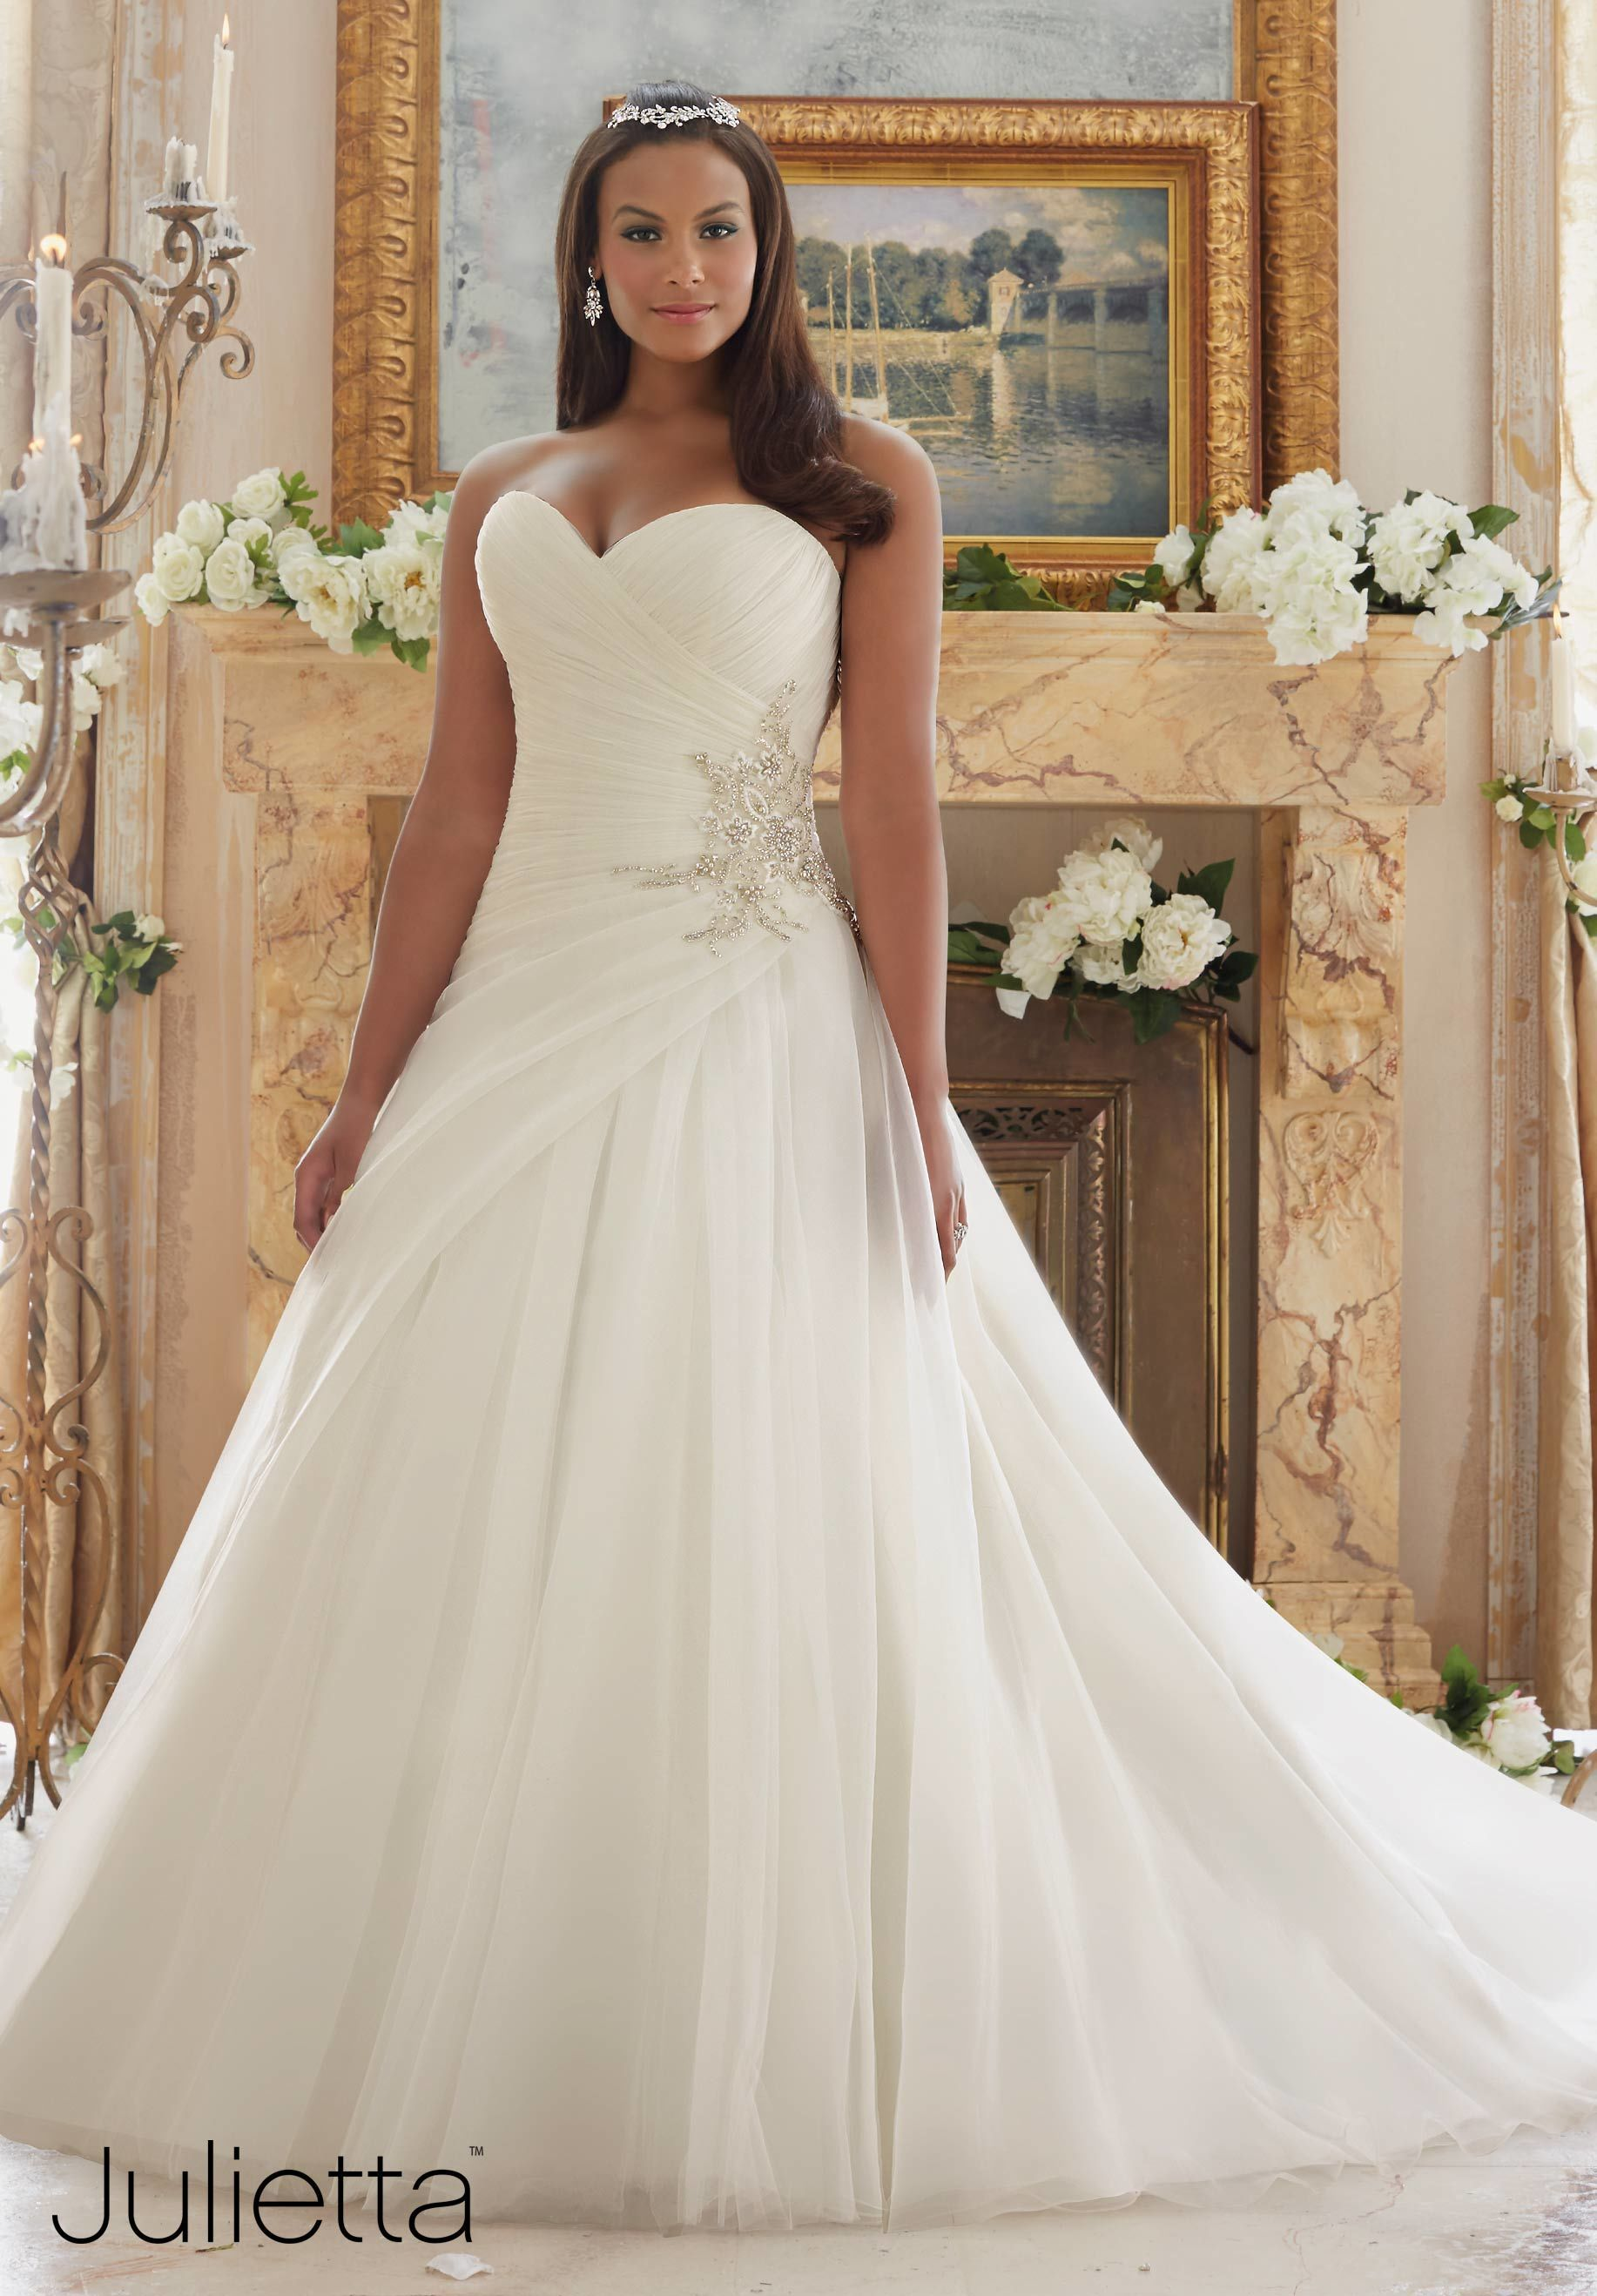 Wedding dresses for curvy women for Wedding dresses for small frames